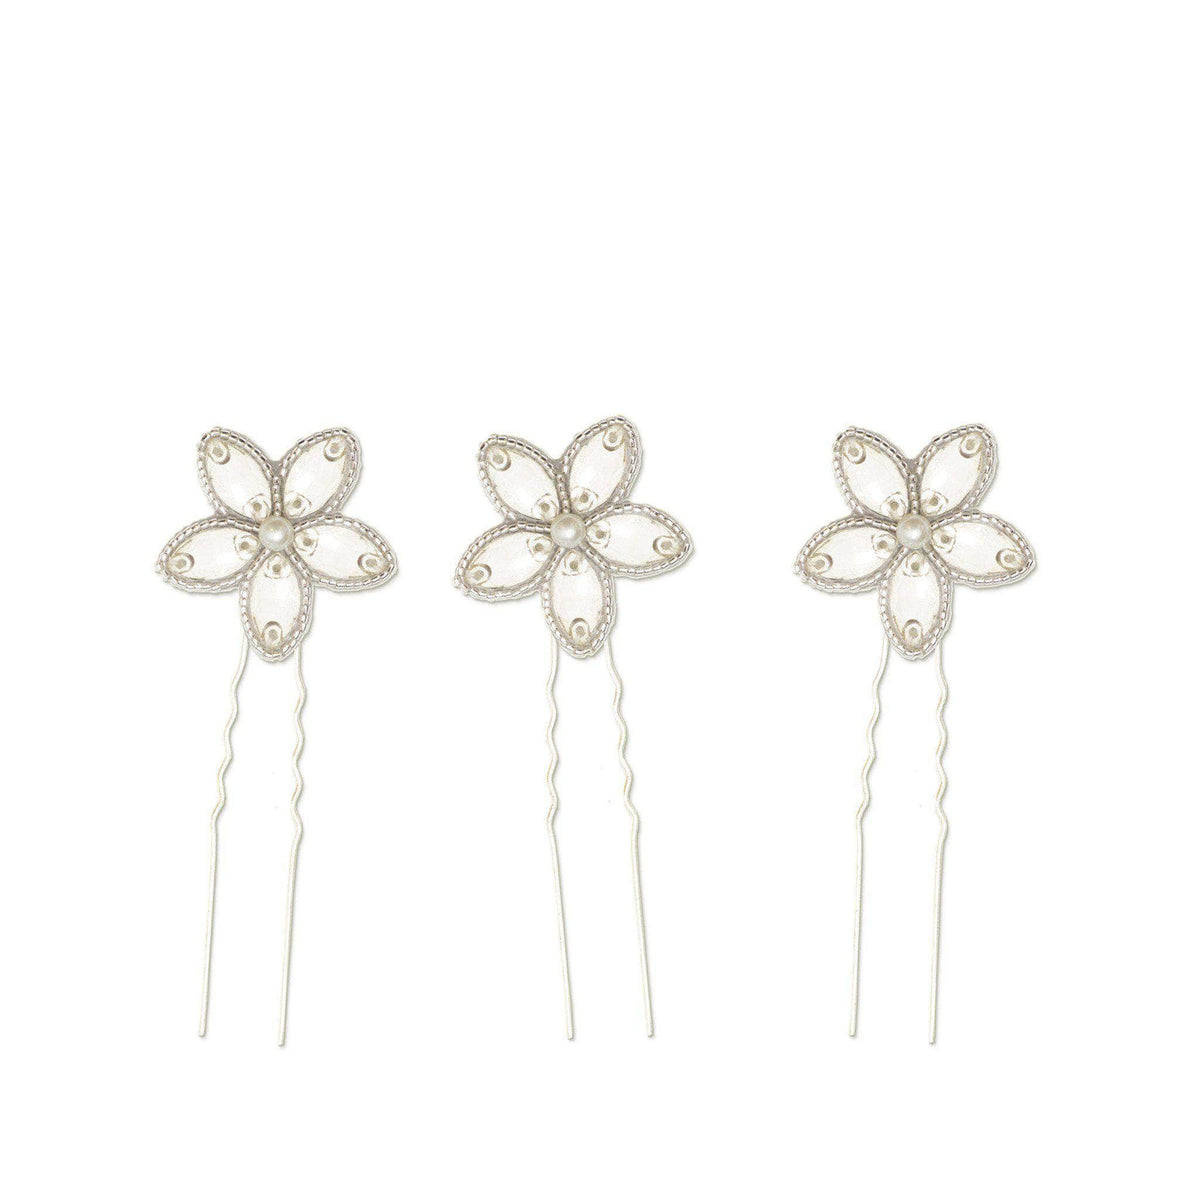 Silver wedding hair pins with crystal flower (x3) - 'Lena'